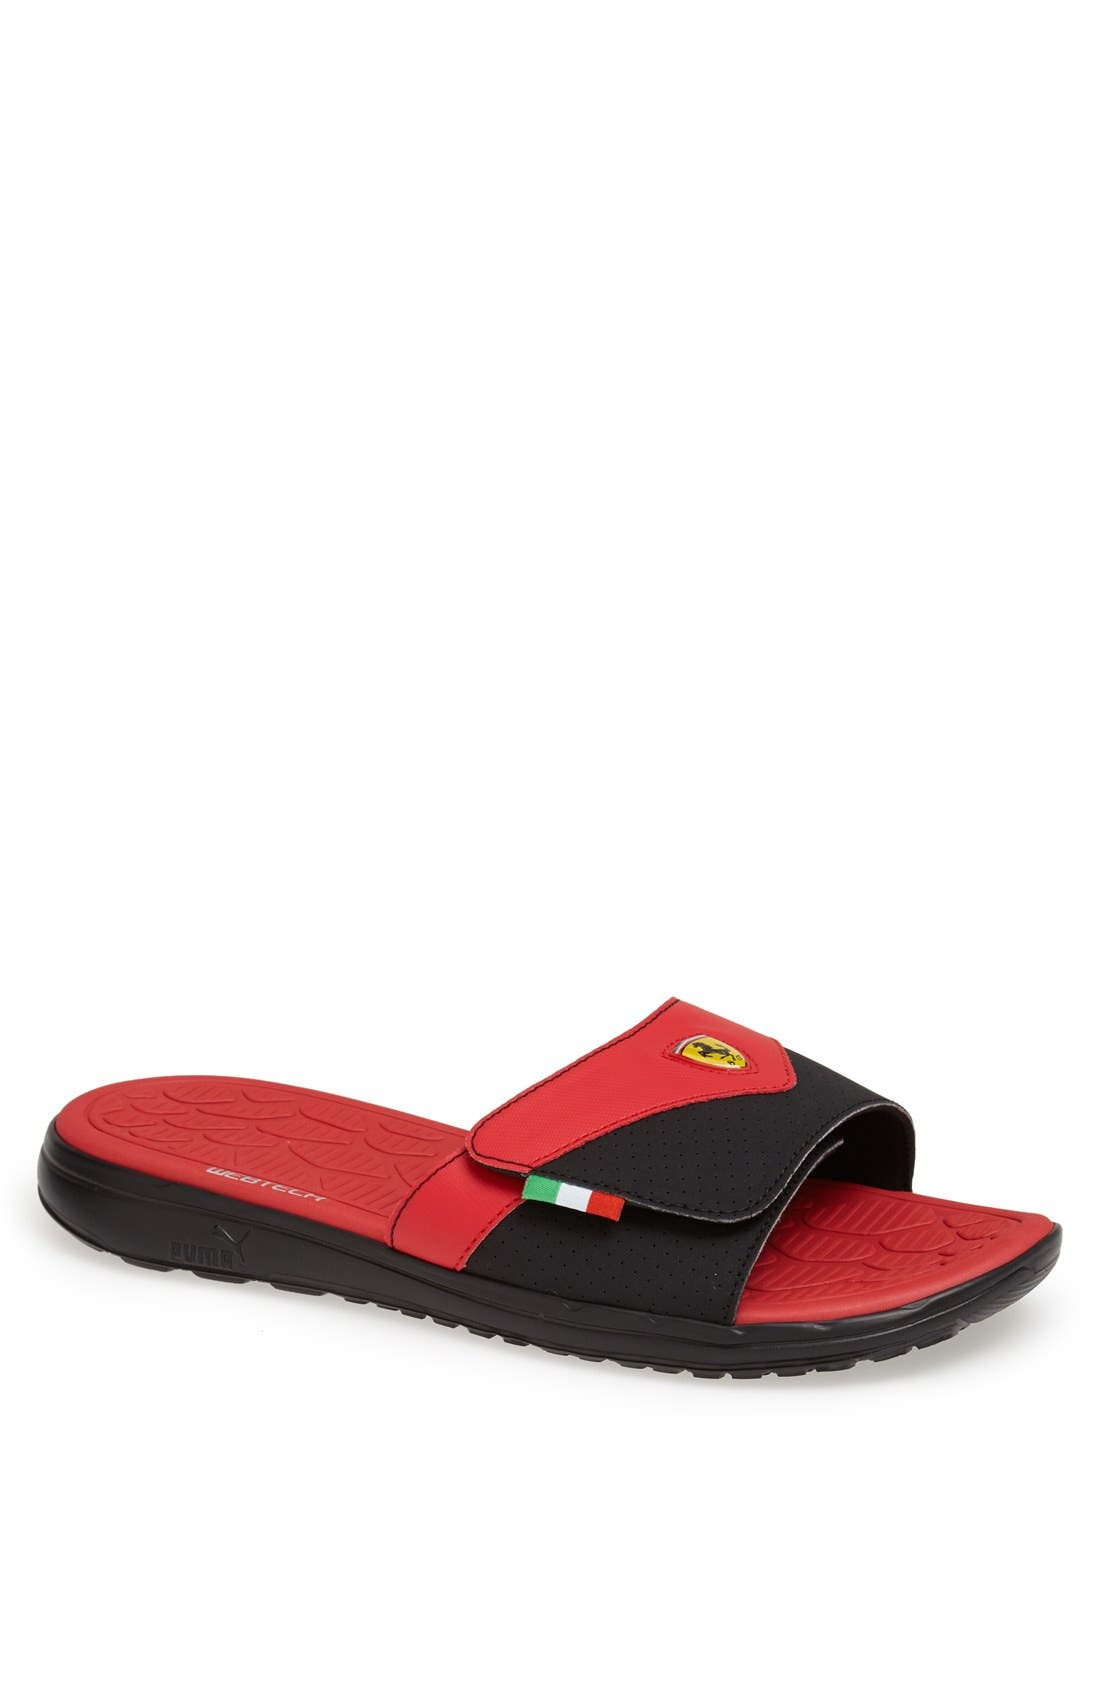 Puma Ferrari Flip Flops Cheaper Than Retail Price Buy Clothing Accessories And Lifestyle Products For Women Men